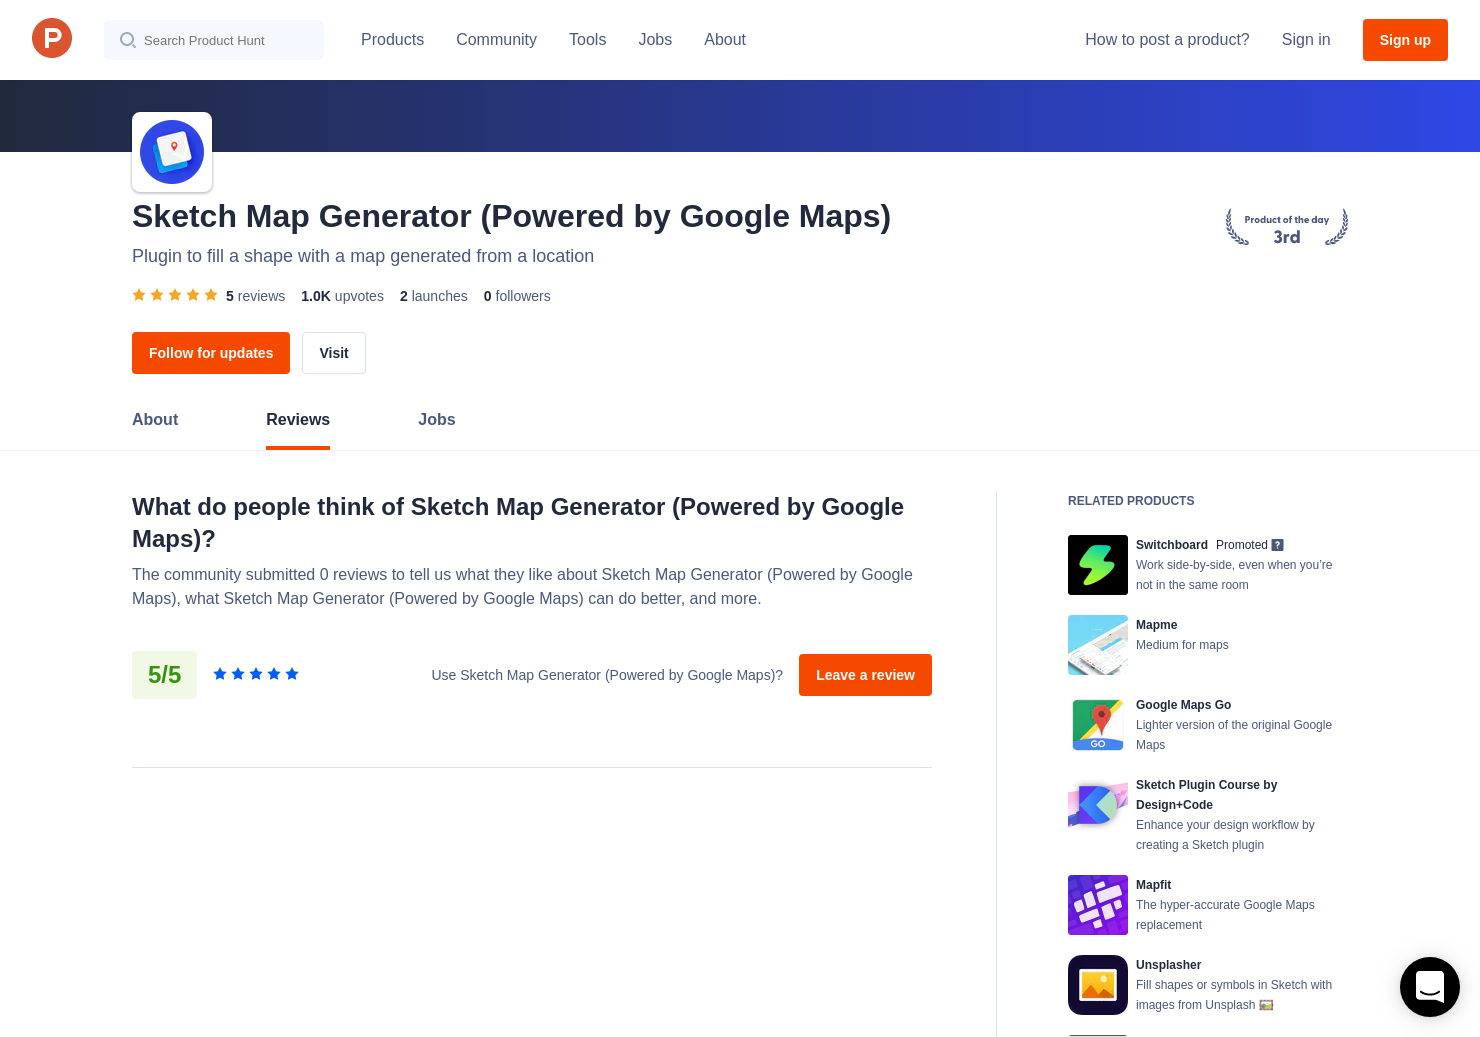 Sketch Map Generator (Powered by Google Maps) Reviews - Pros